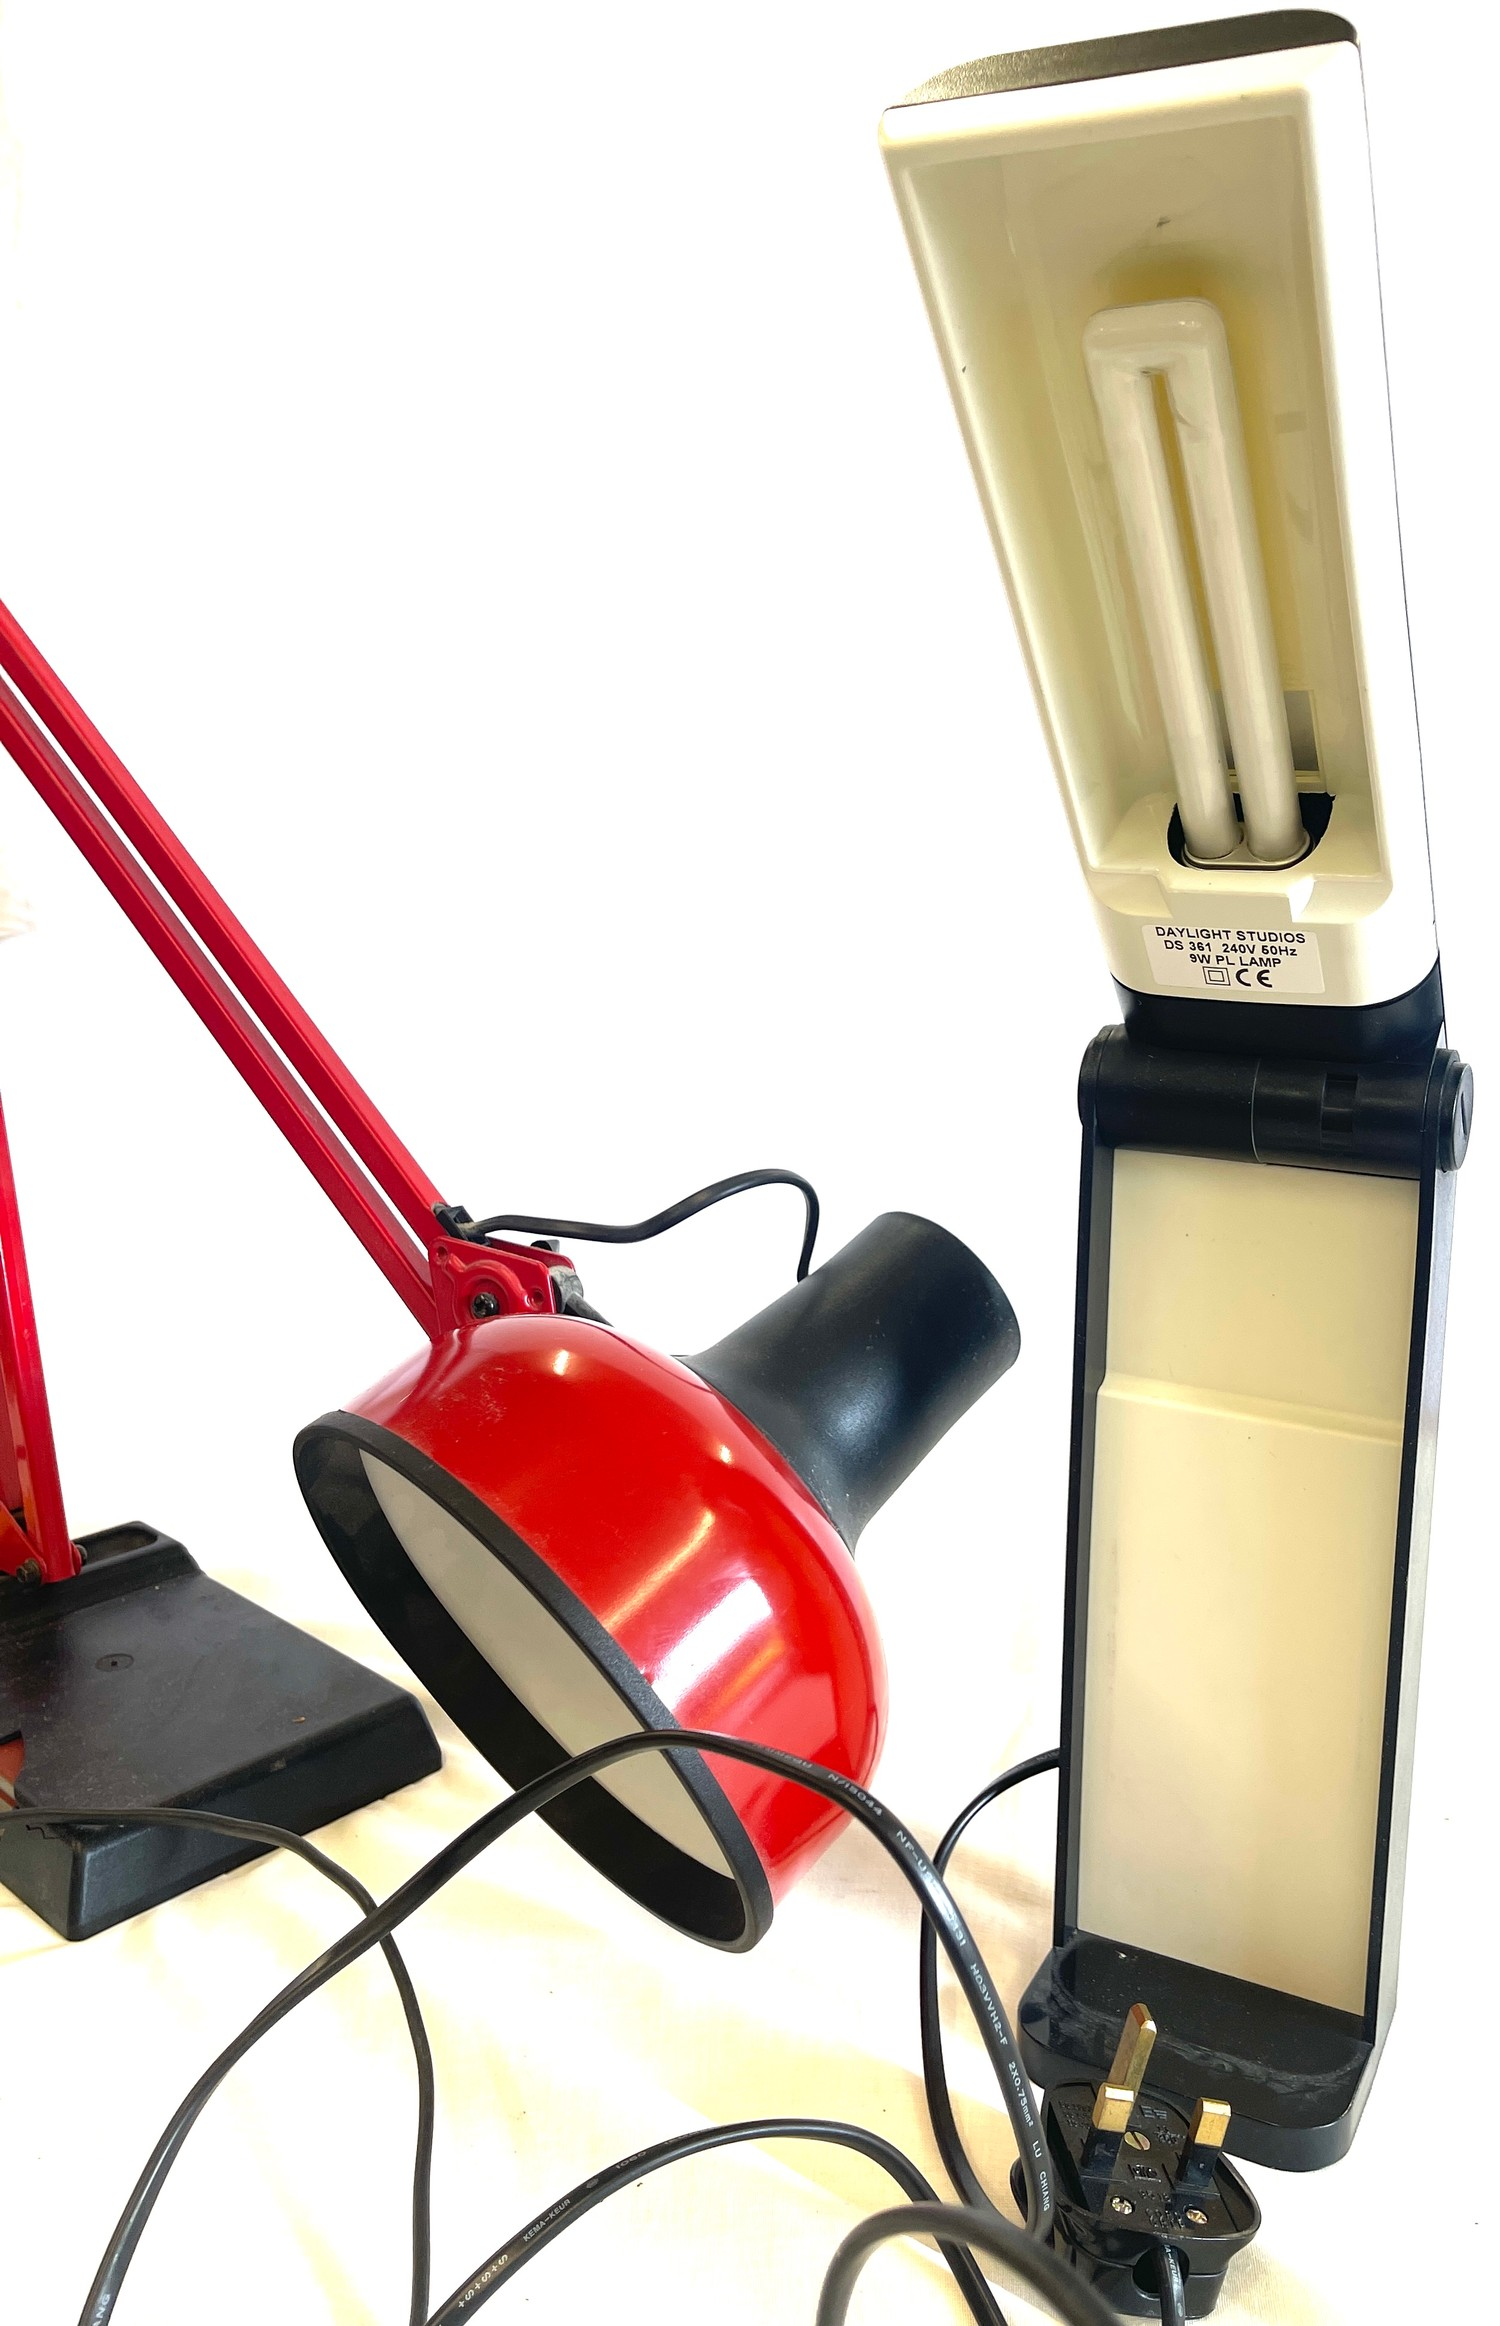 Anglepoise lamp and 1 other - Image 2 of 3